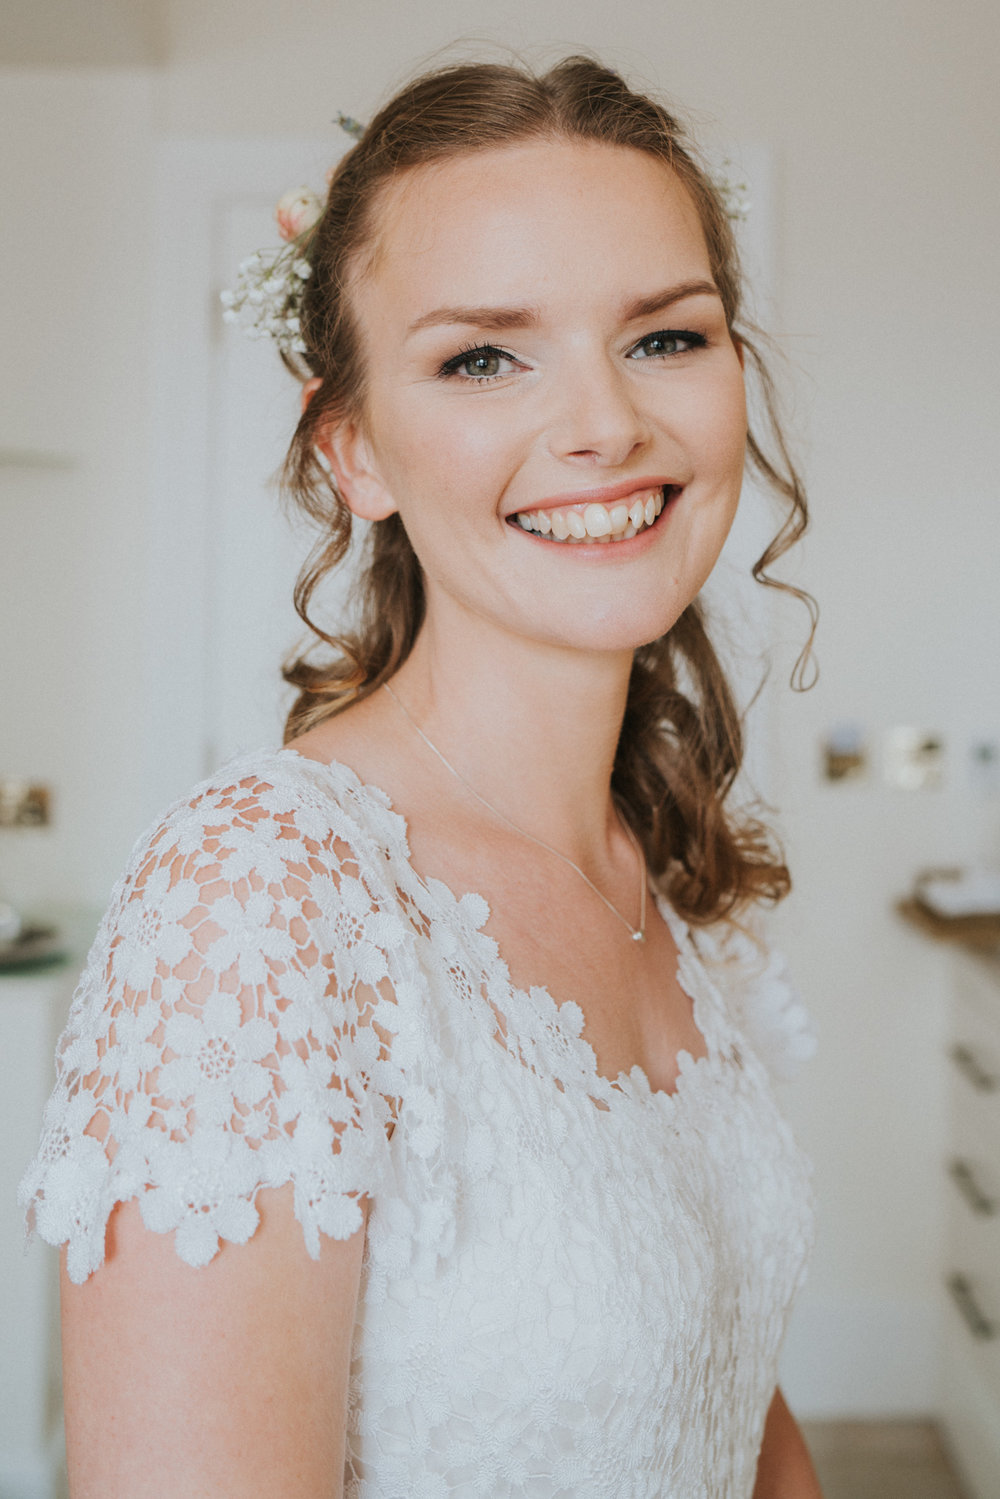 Grace-Elizabeth-Georgie-Amalaketu-Firstsite-Colchester-Essex-Boho-Buddhist-Wedding-Alternative-Wedding-Photography-Essex (30 of 100).jpg